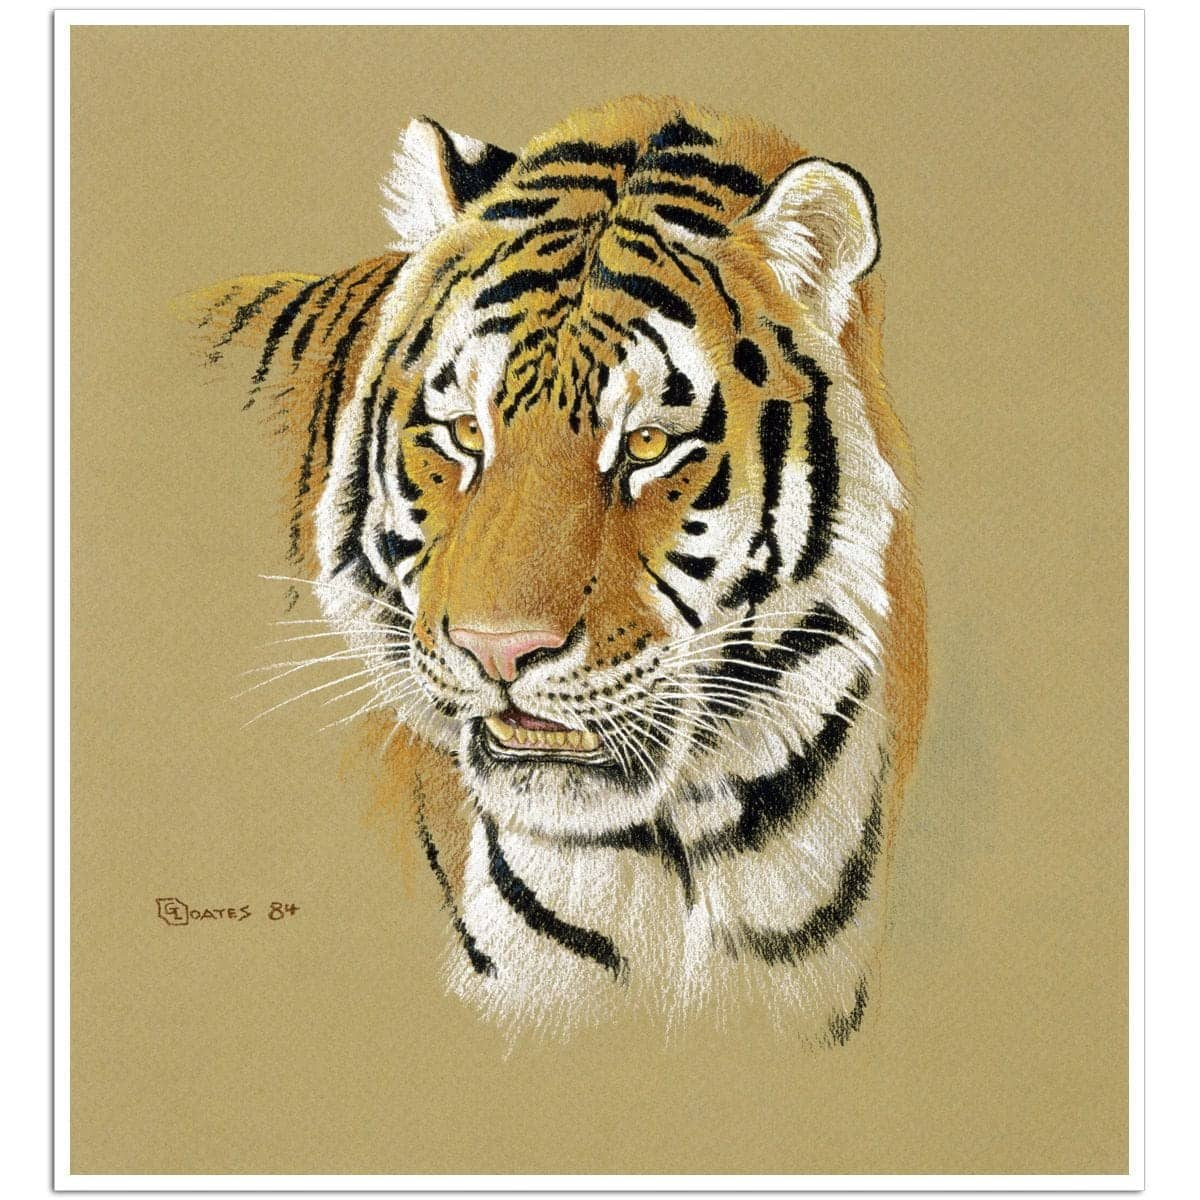 Tiger Portrait - Art Print by Glen Loates from the Glen Loates Store